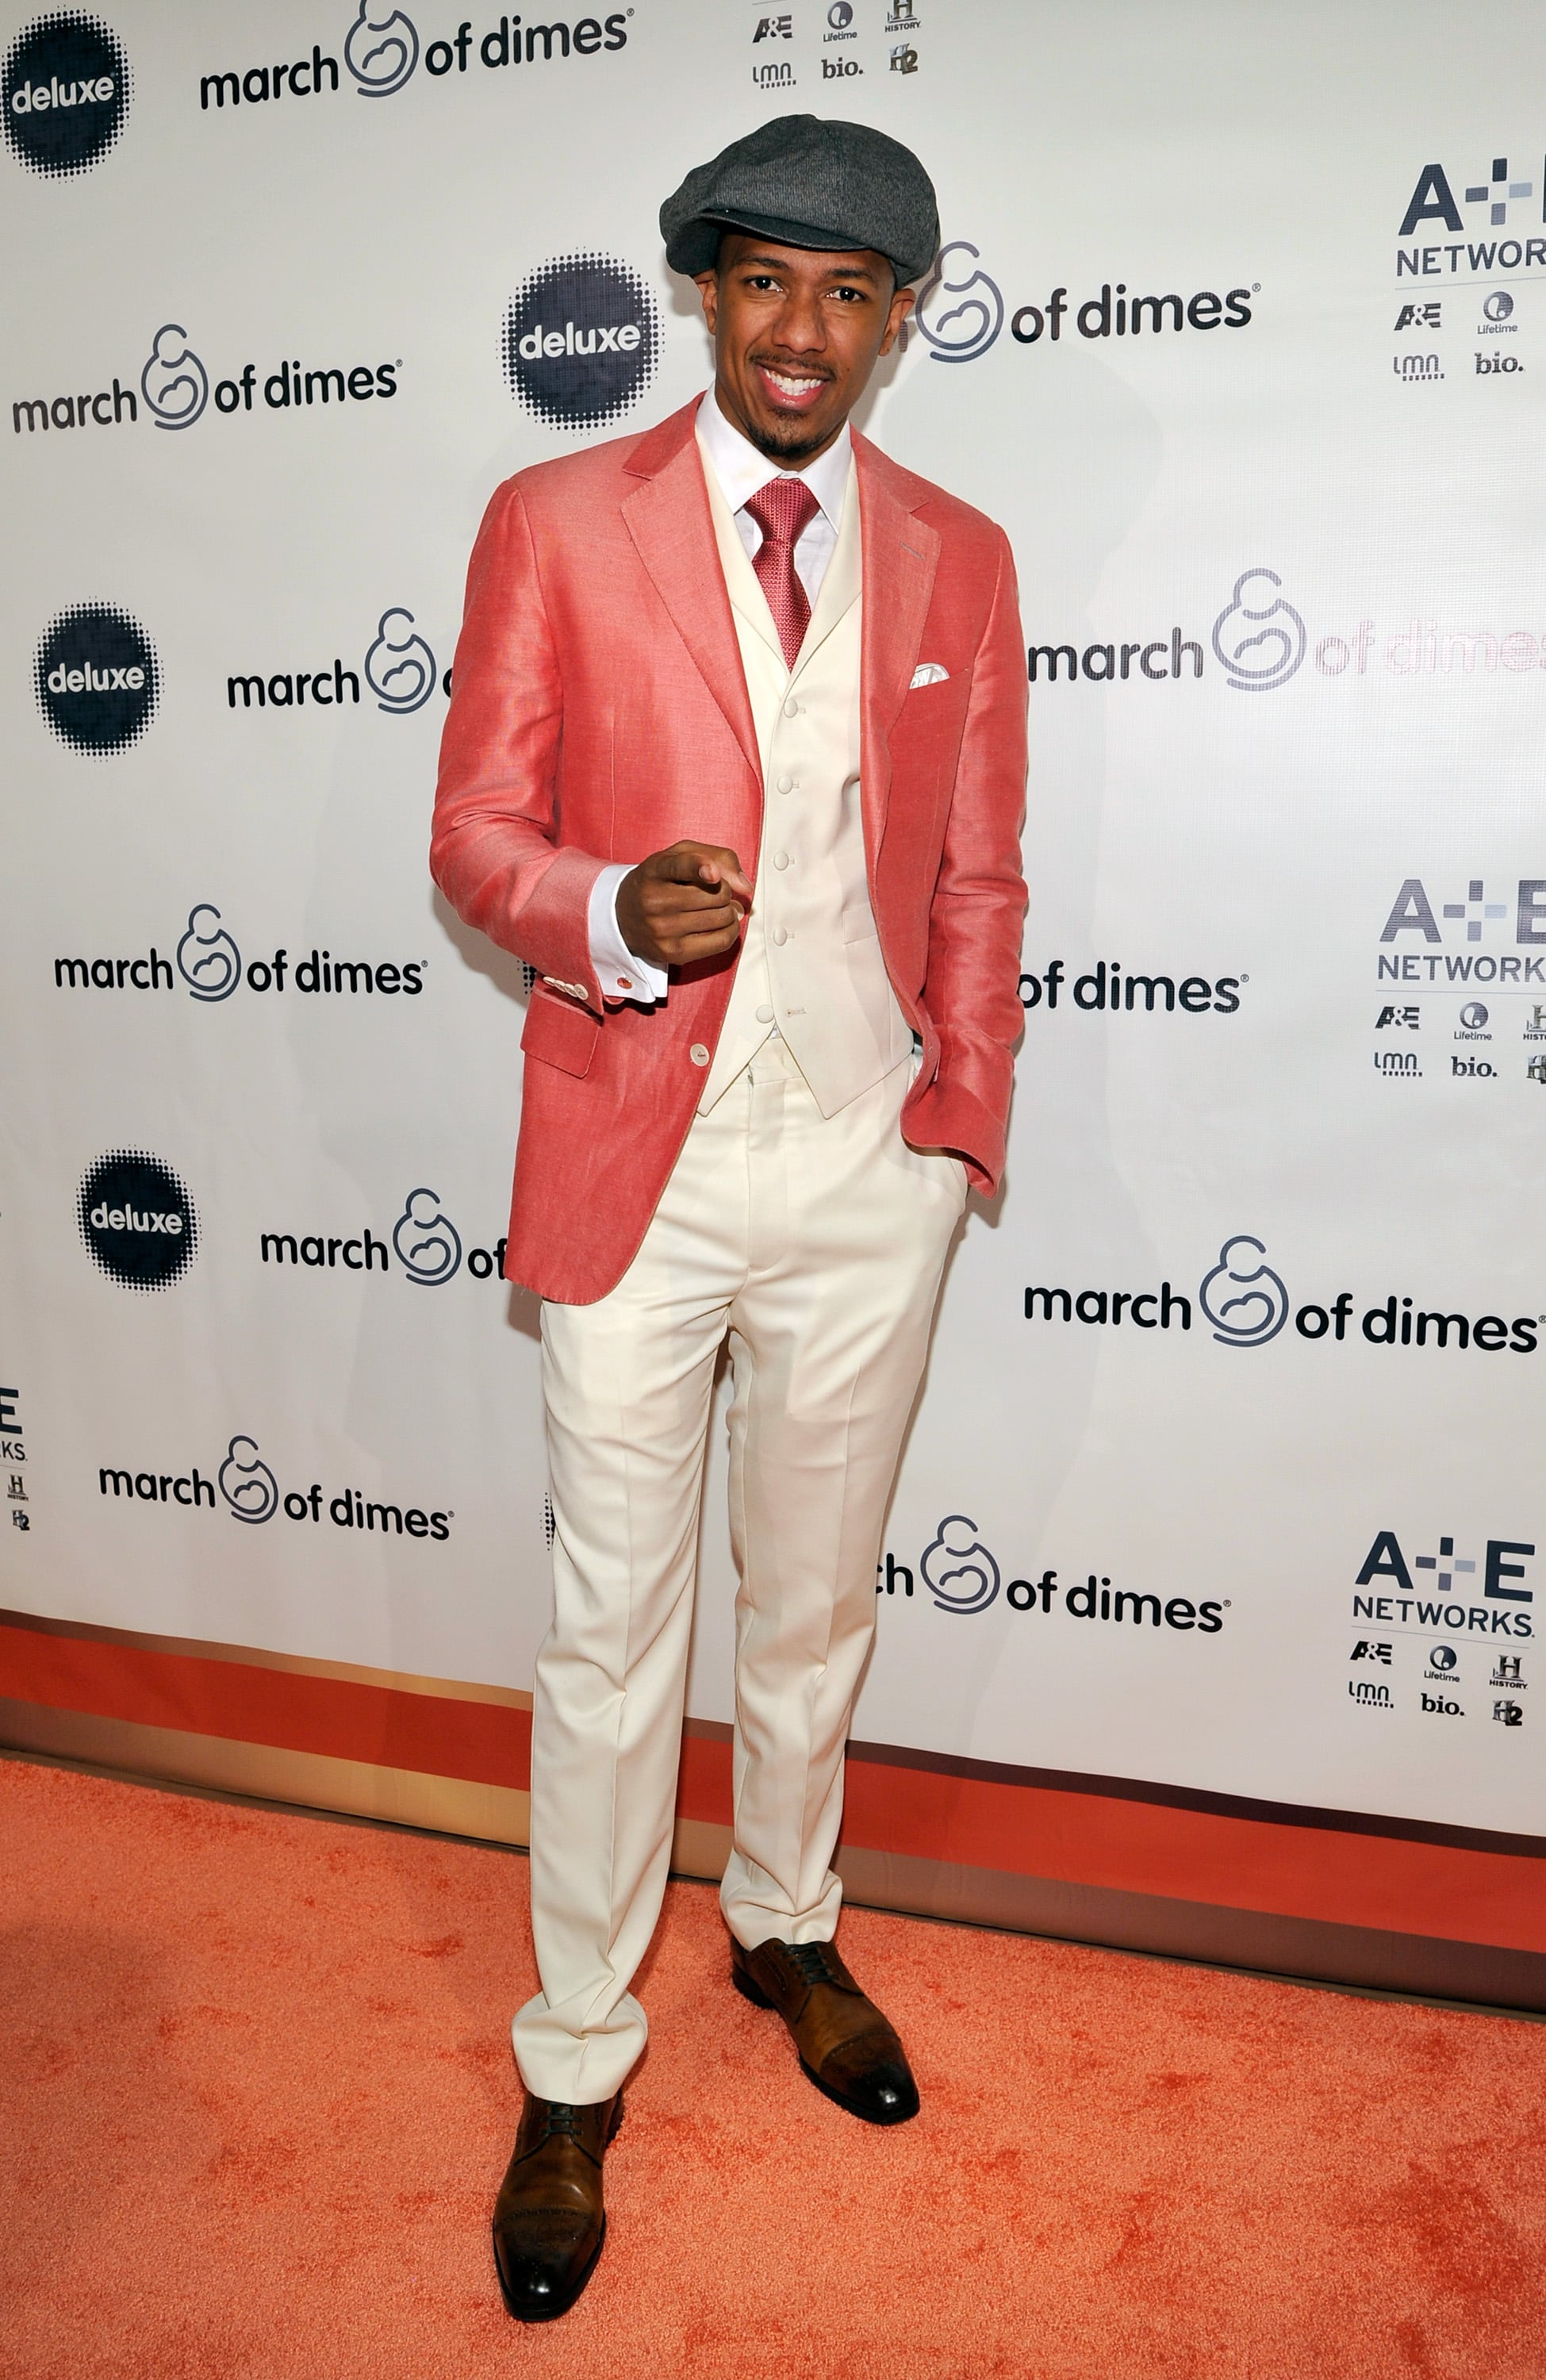 Nick Cannon struck a pose on the red carpet.